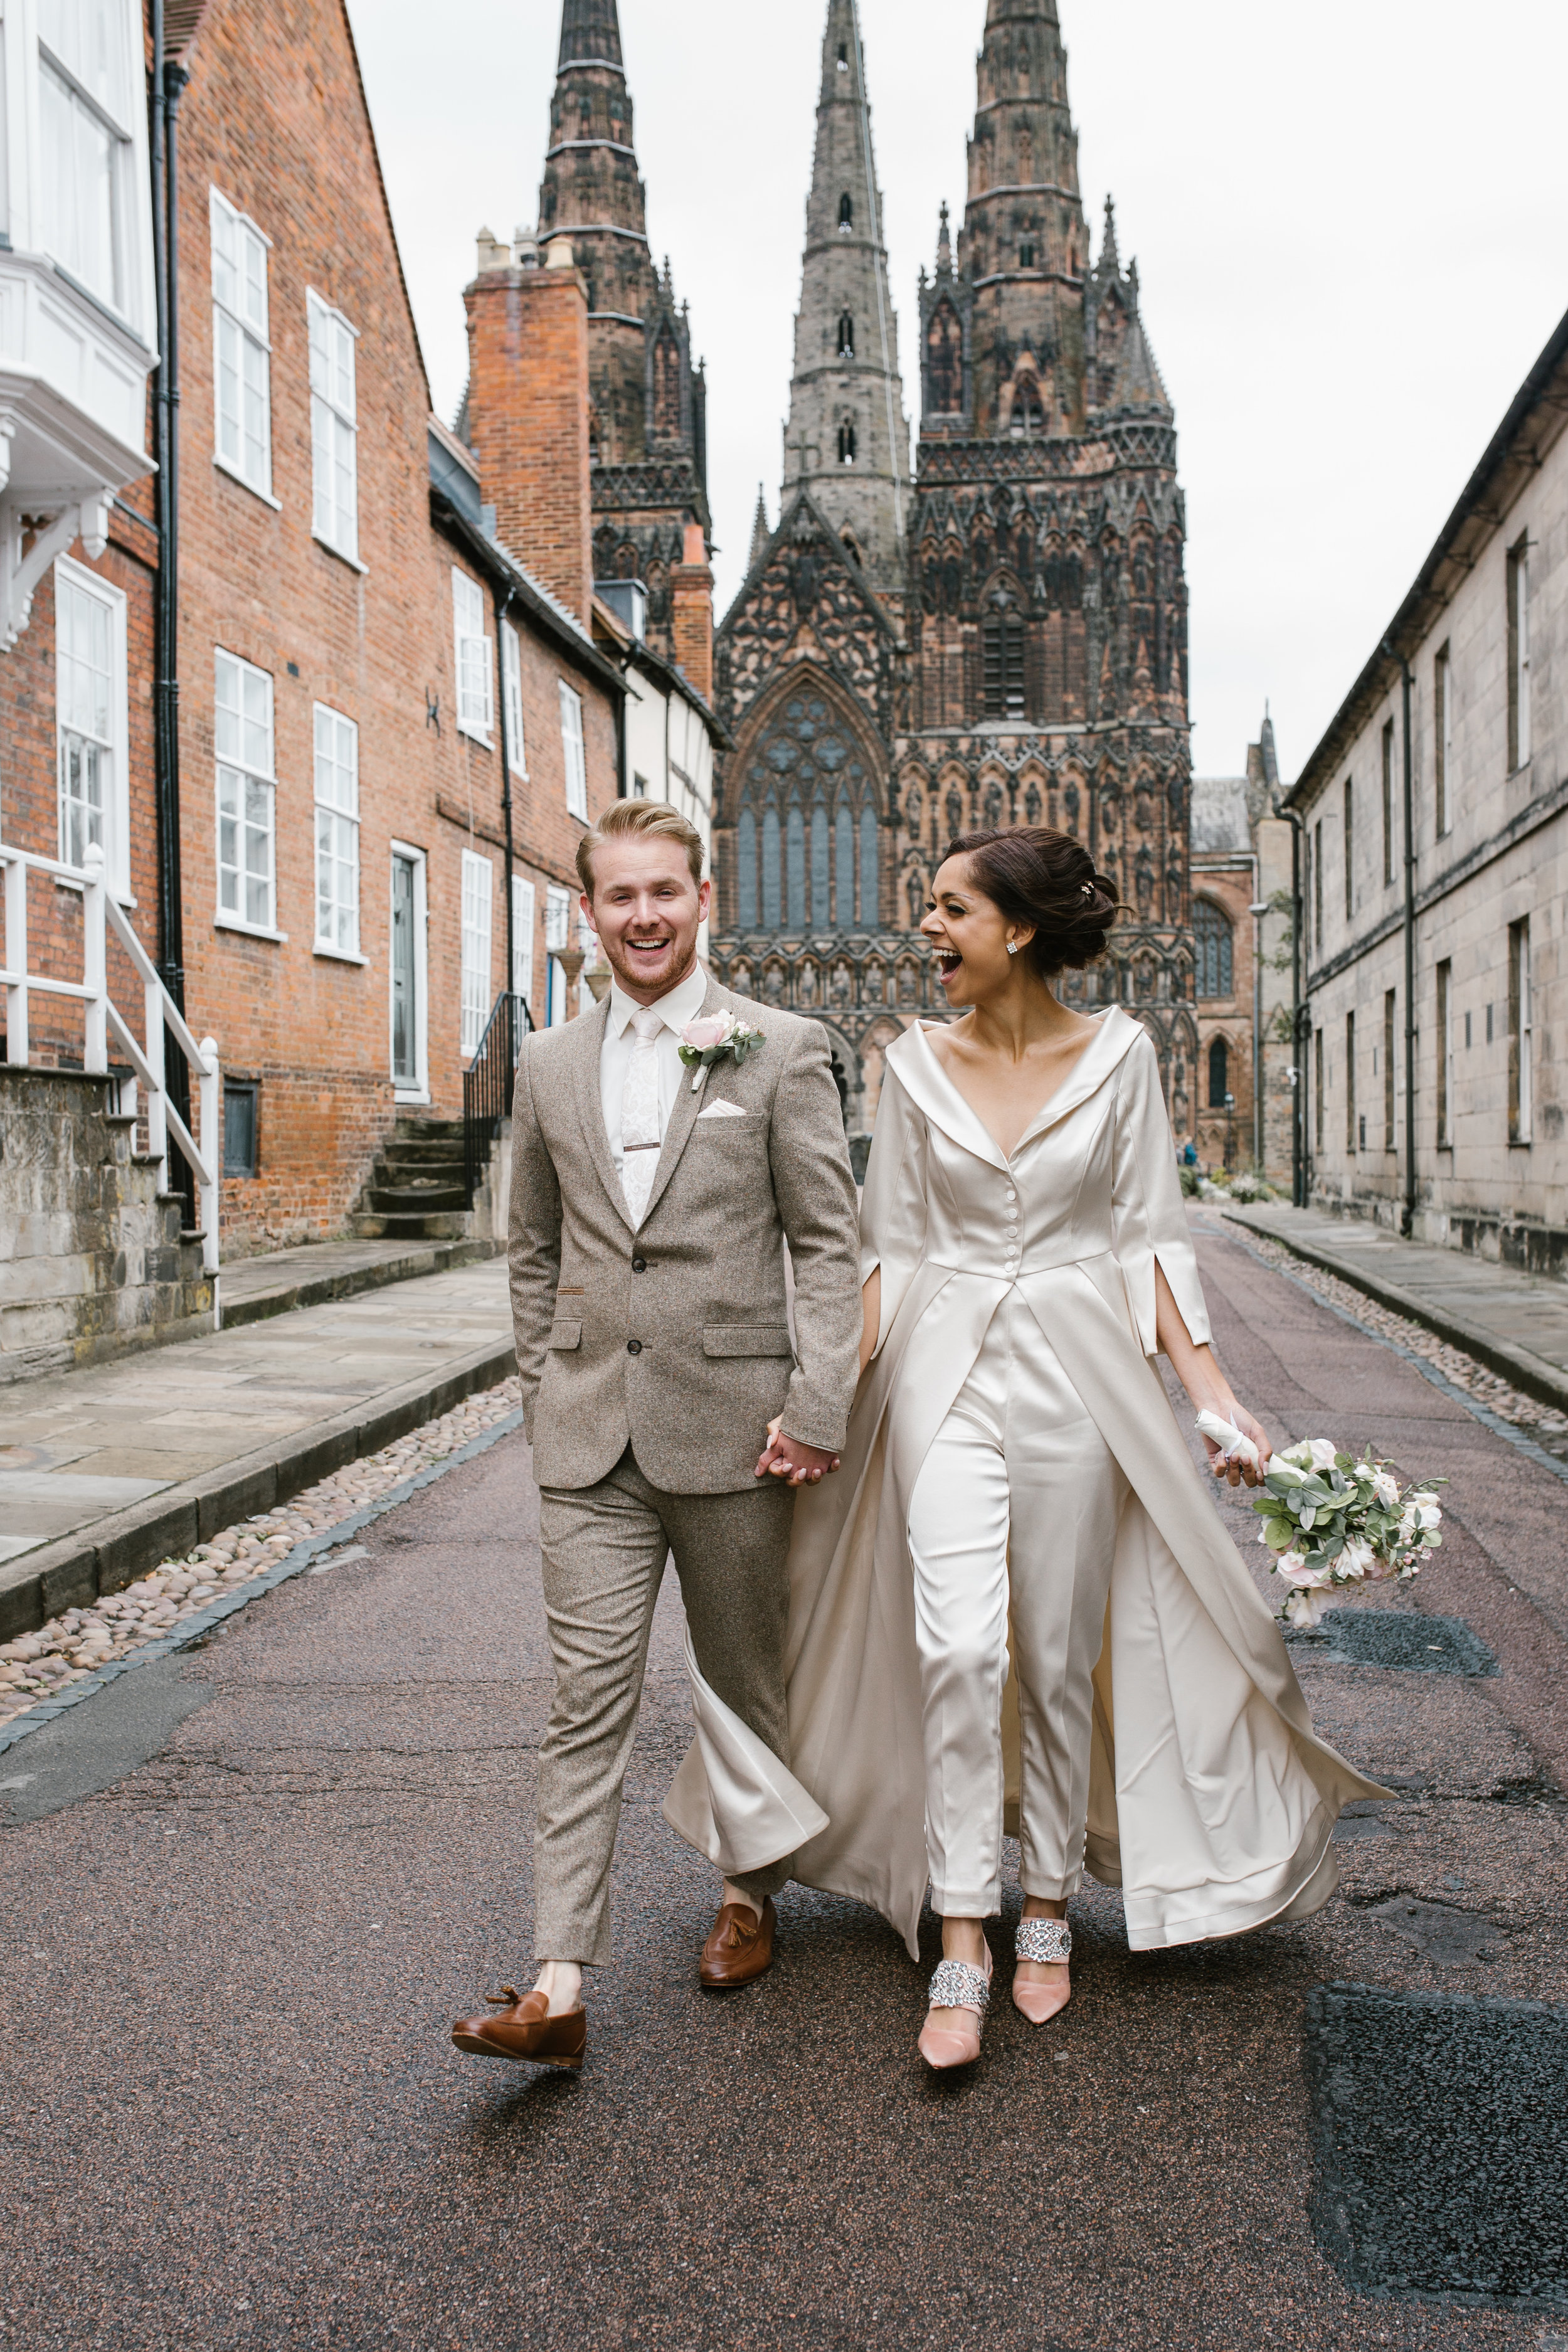 a very happy bride and groom walking holding hands laughing with lichfield cathedral in the background after their intimate ceremony- wedding photography in staffordshire